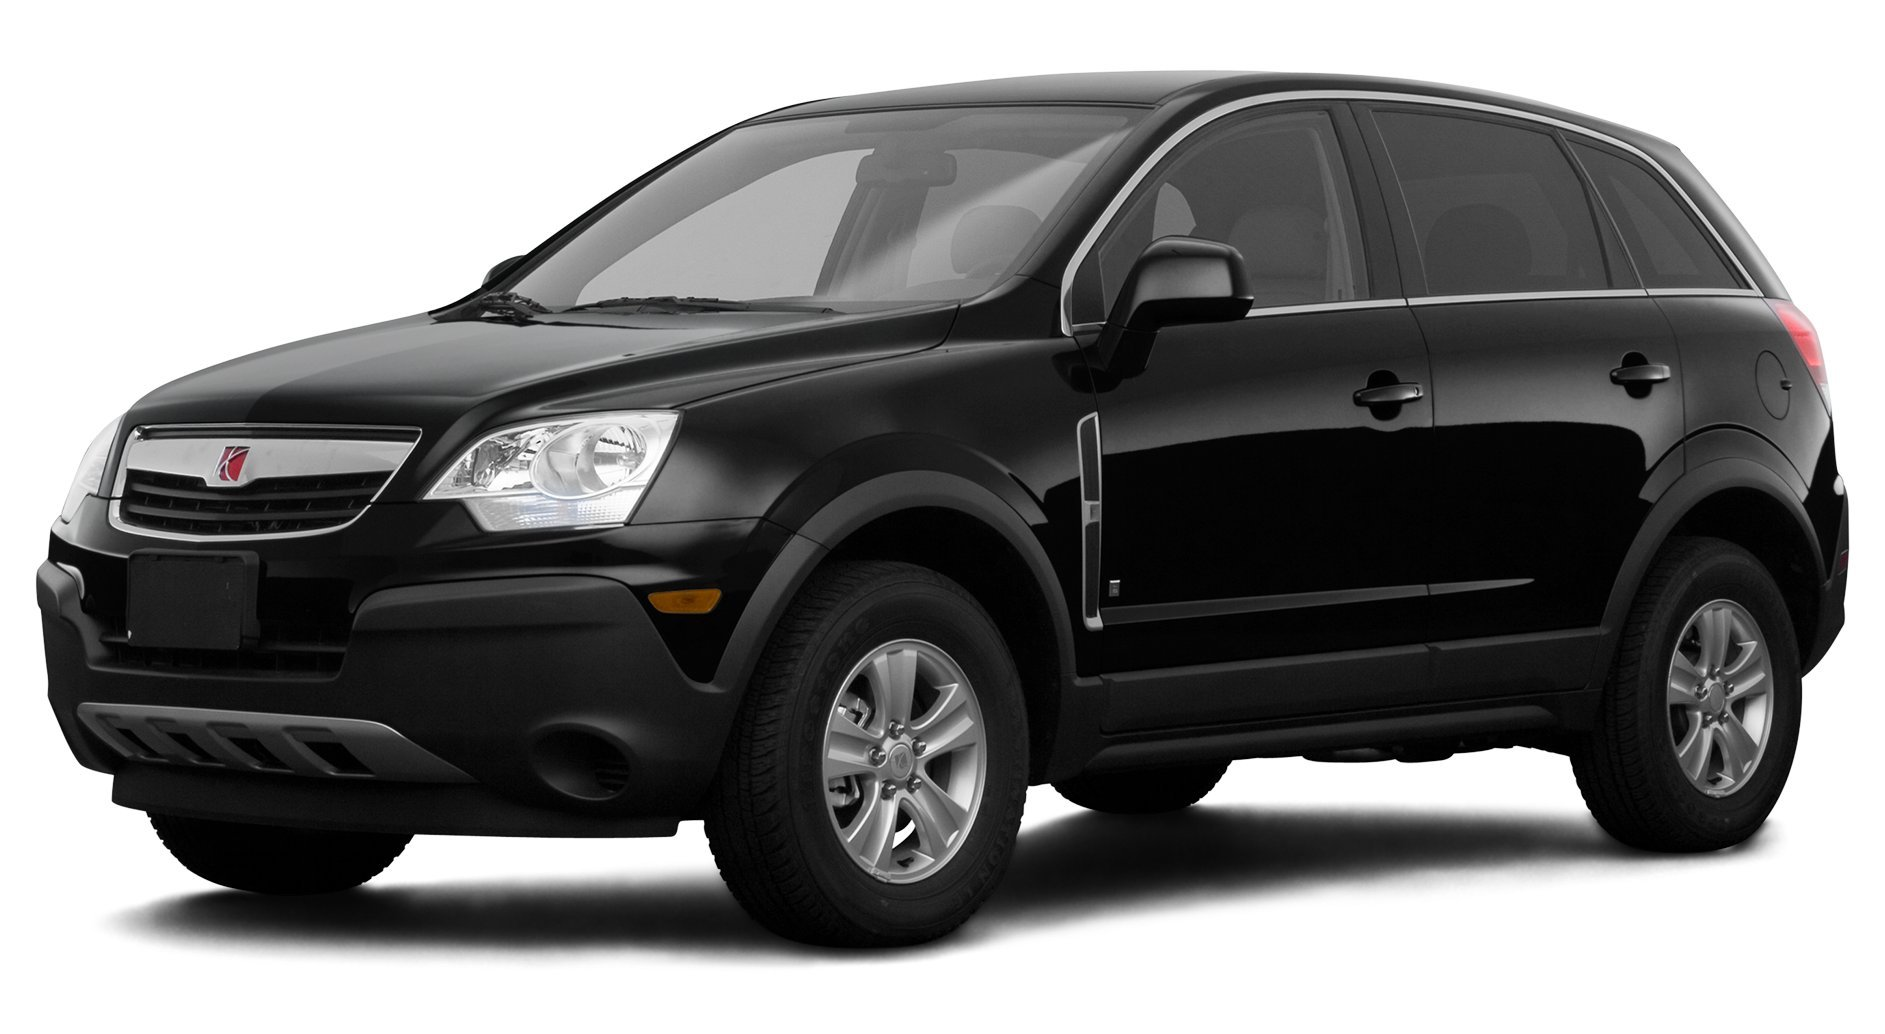 2008 hyundai santa fe reviews images and. Black Bedroom Furniture Sets. Home Design Ideas